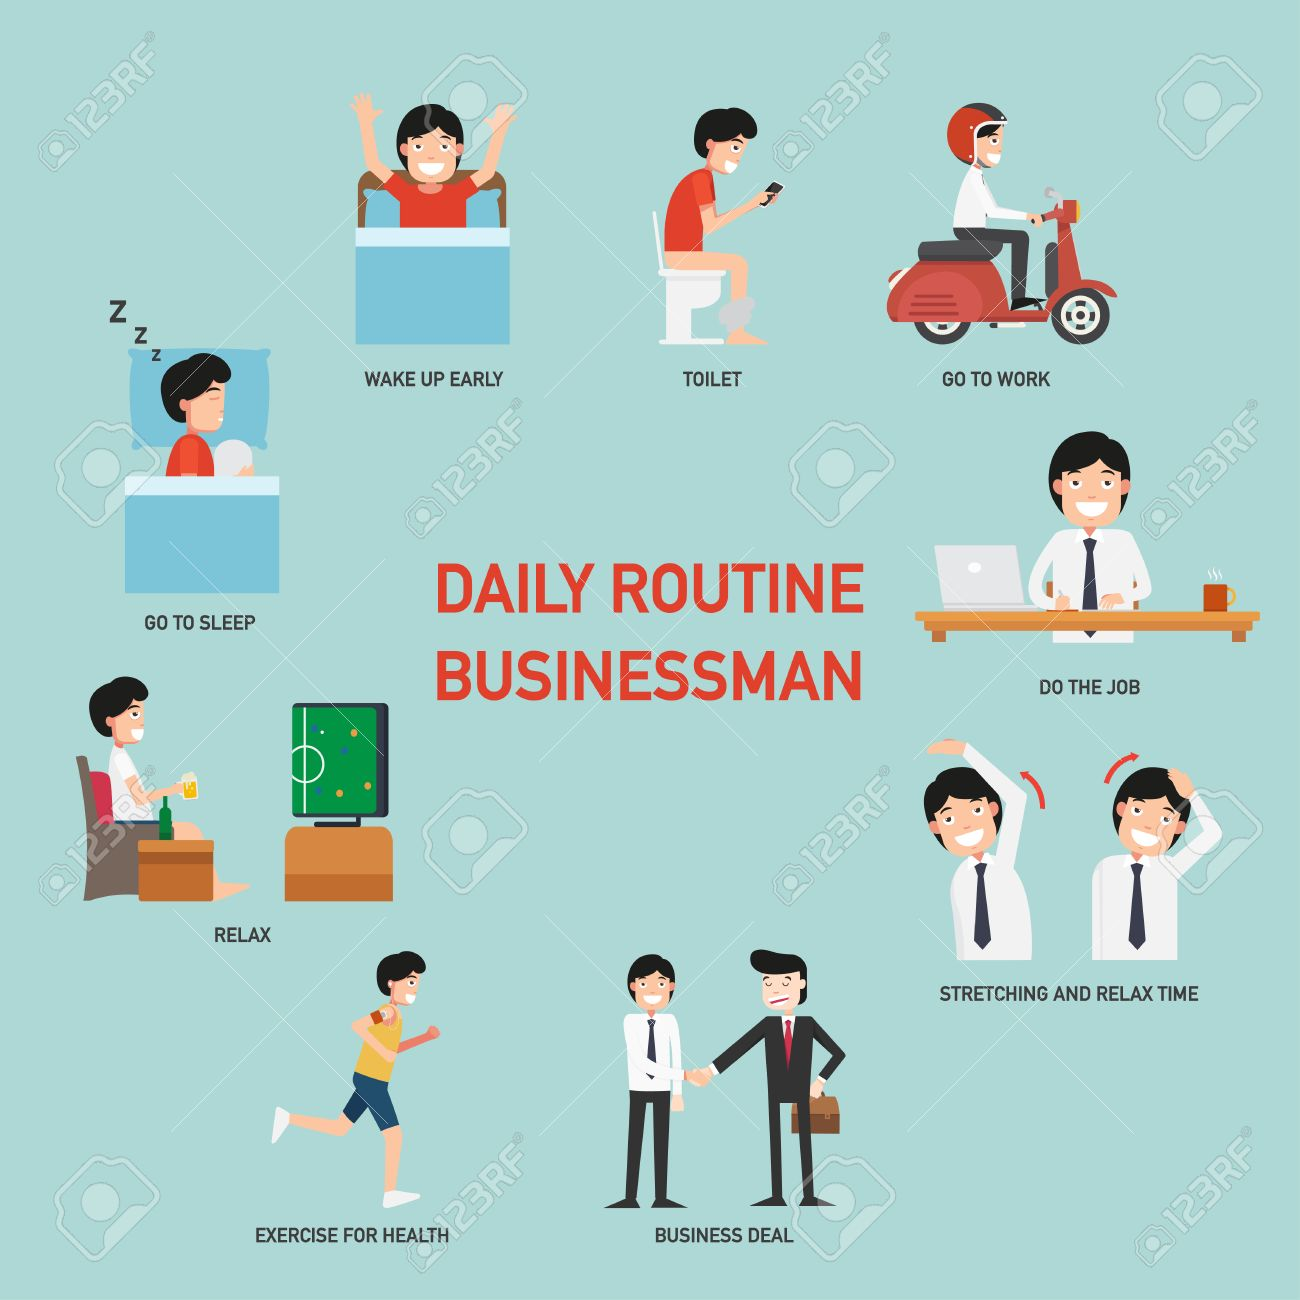 daily routine business people infographic vector illustration